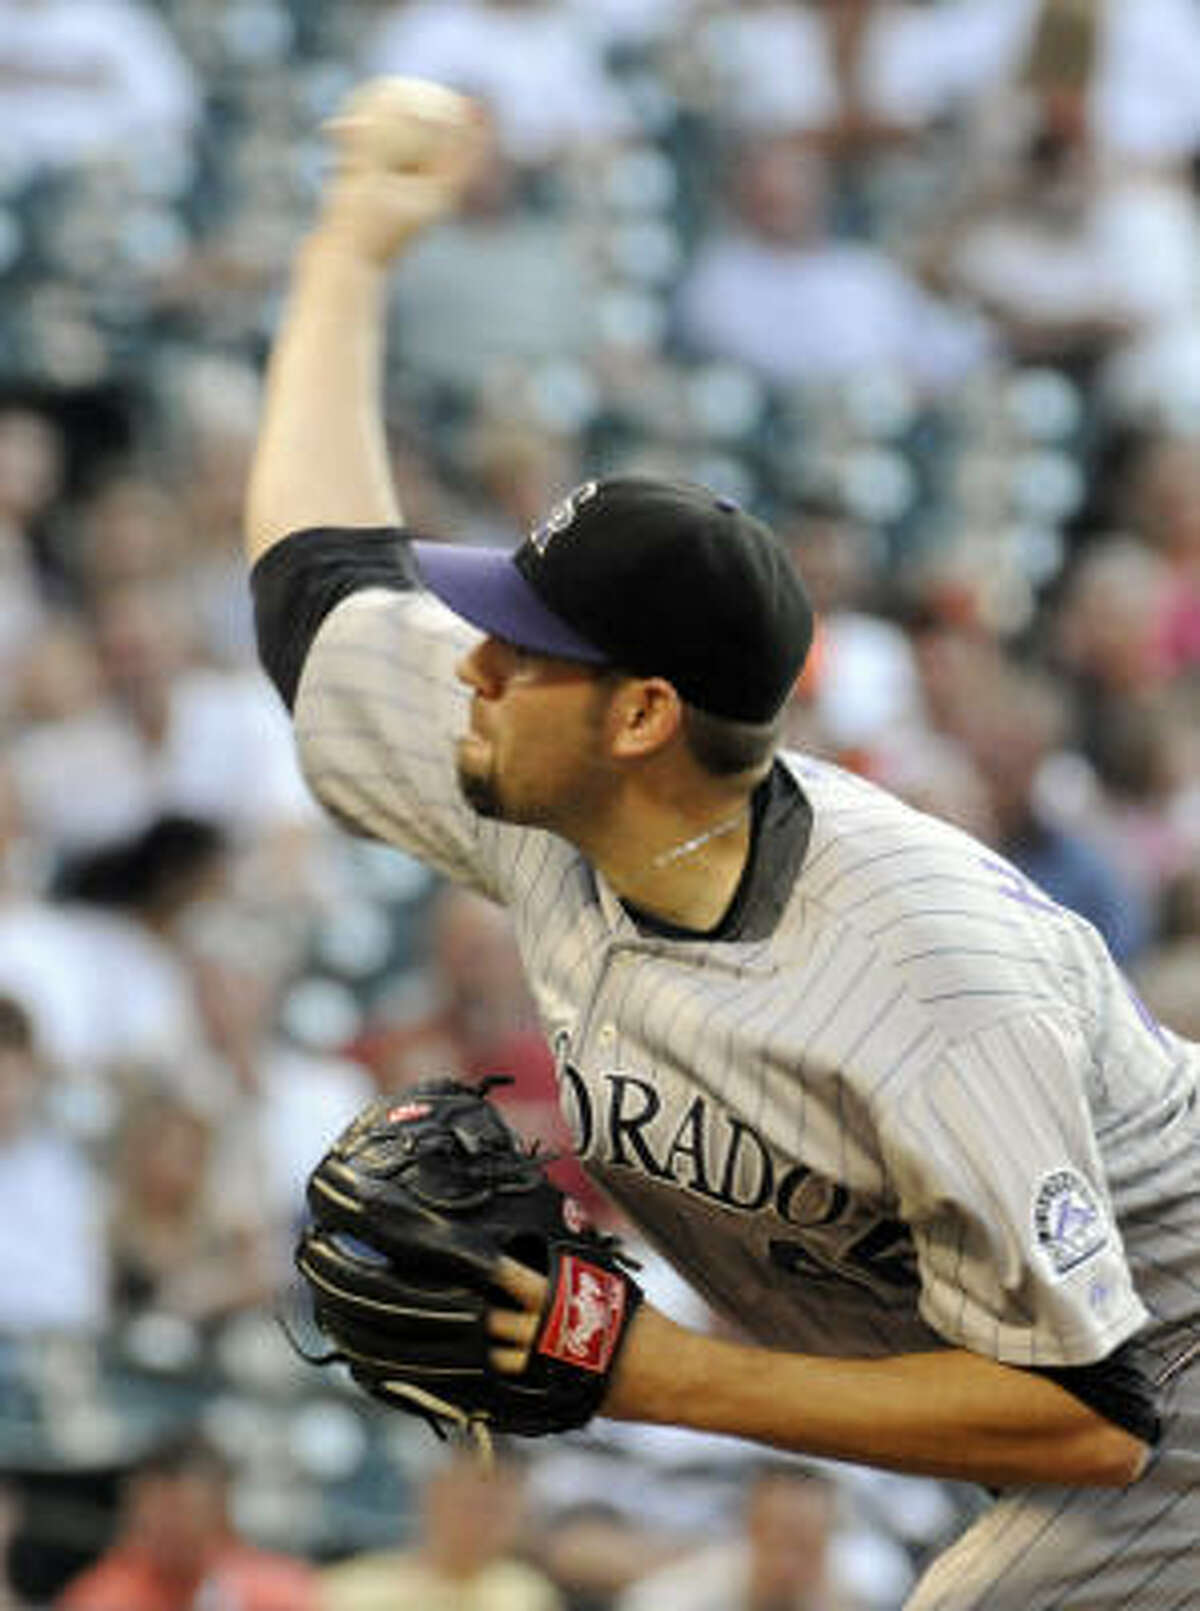 The Rockies provided plenty of offense while Colorado starter Jason Hammel held the Astros to two runs on four hits in seven innings of work.